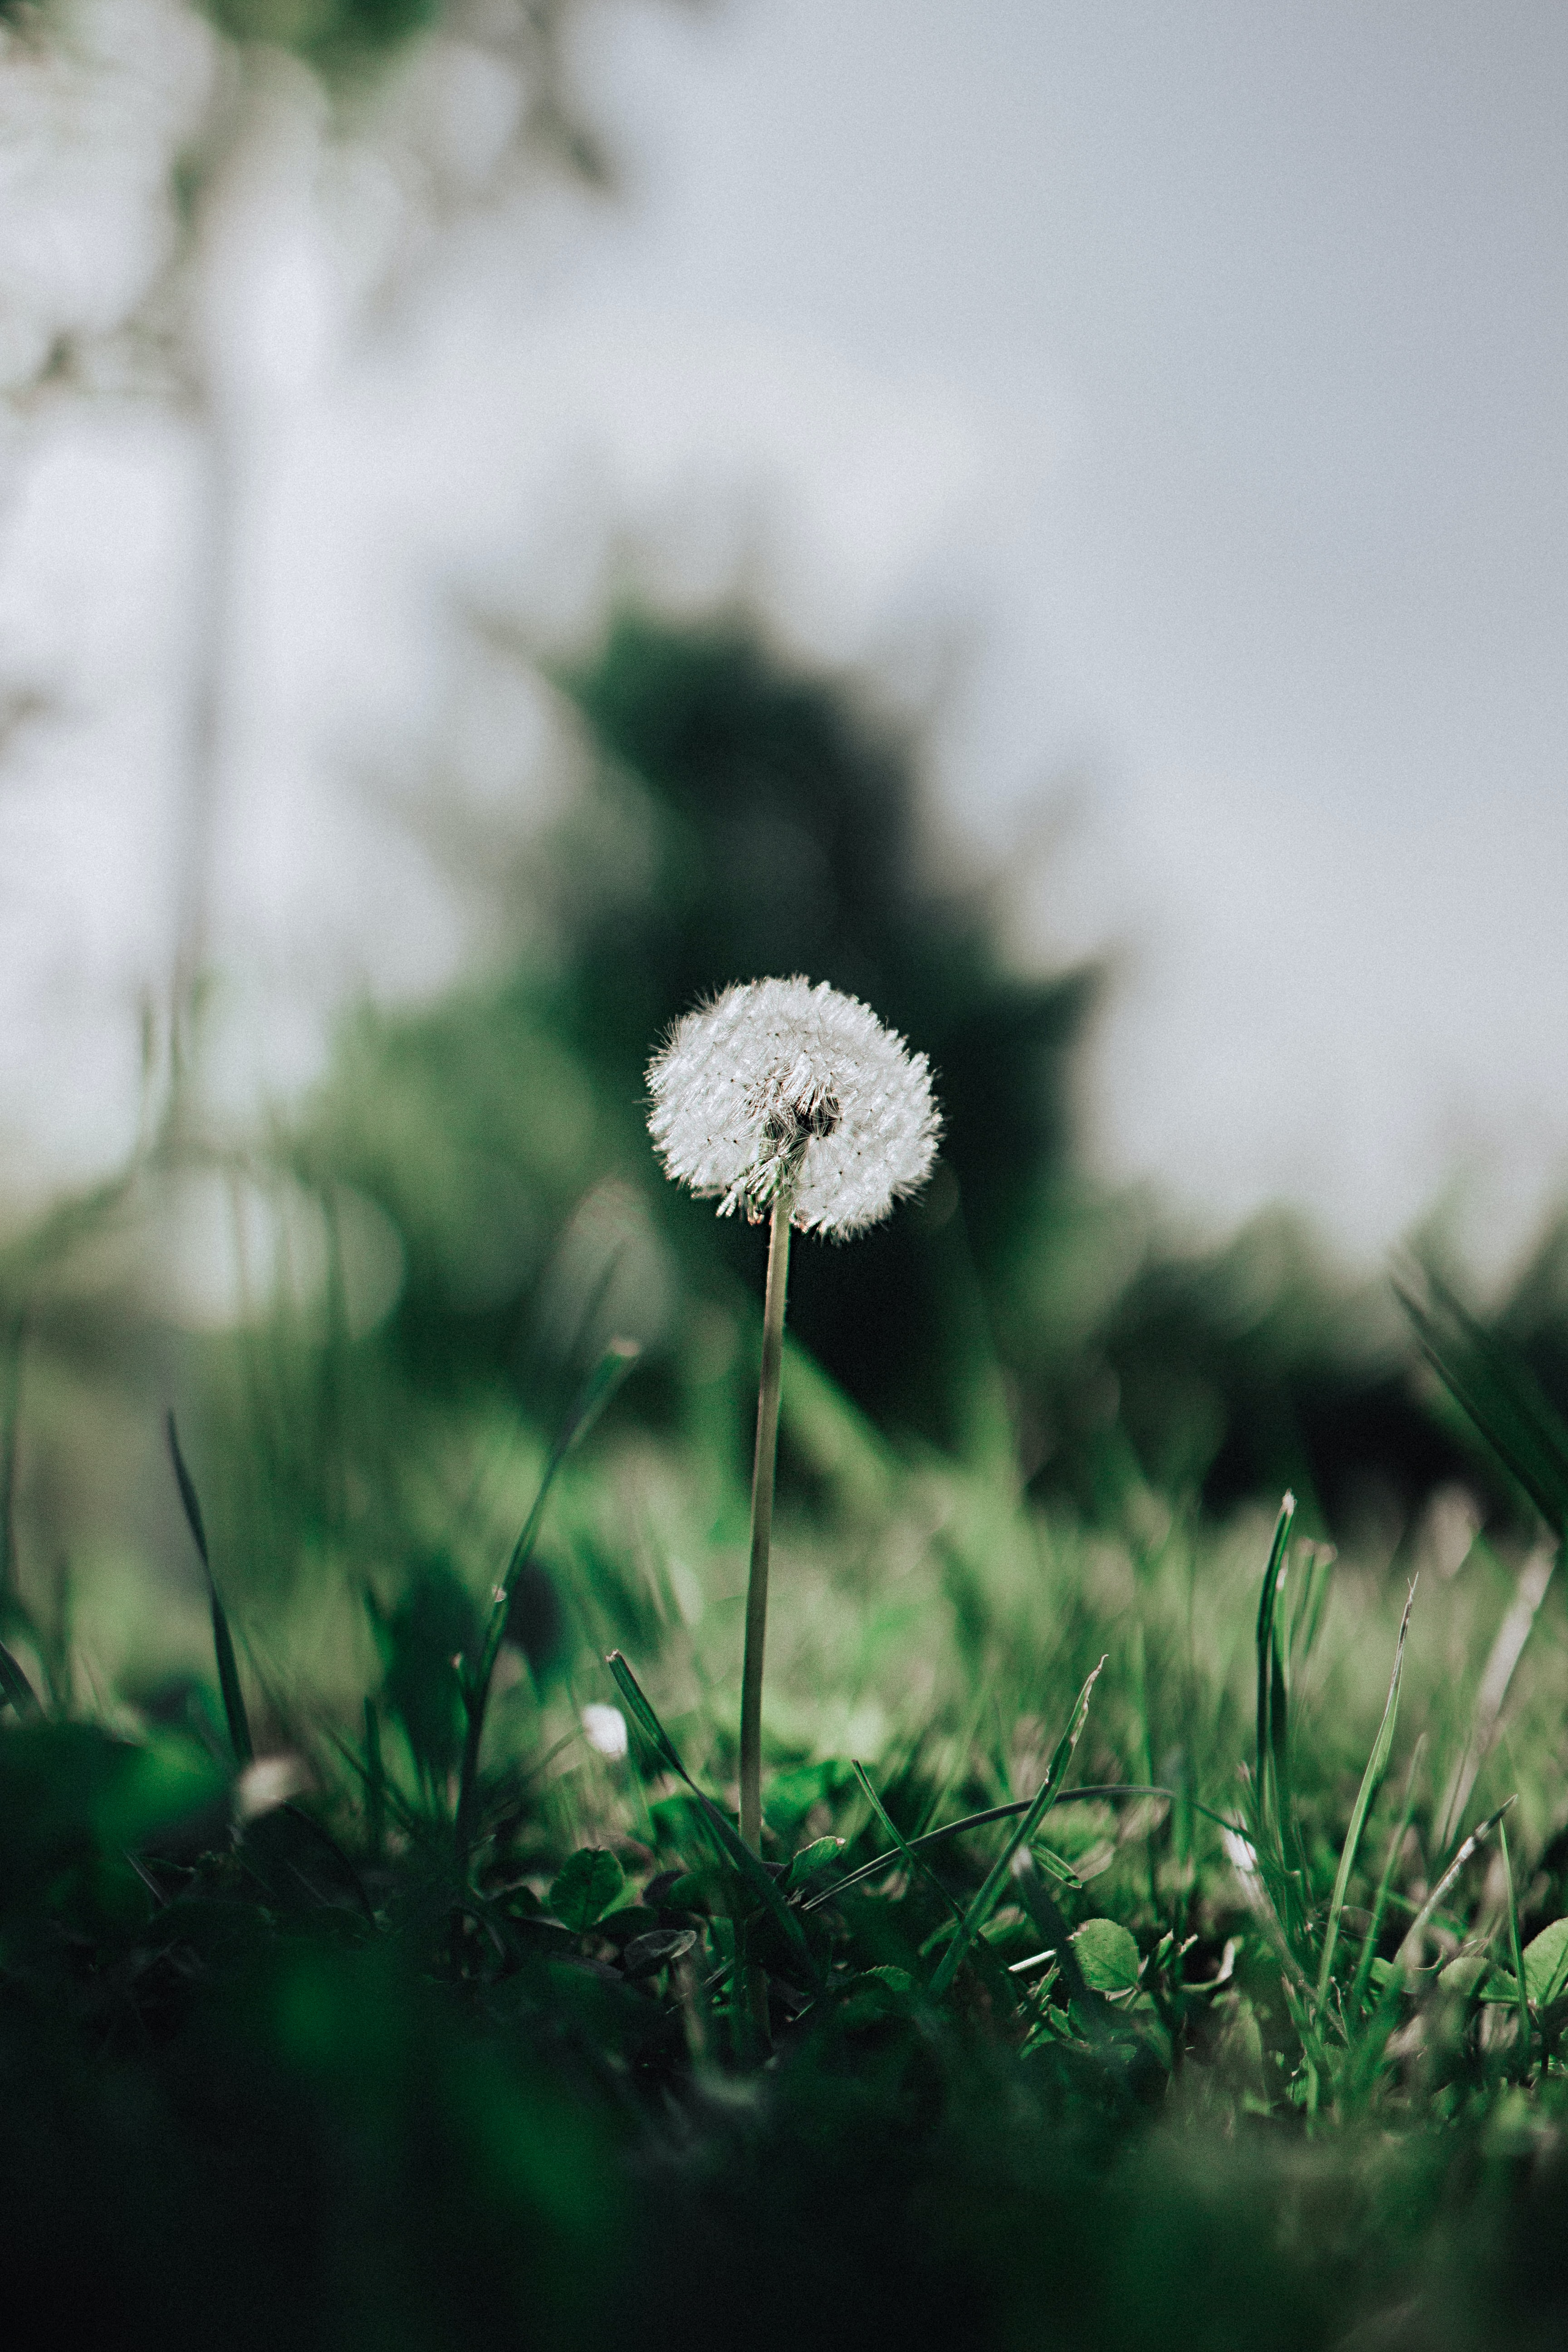 dandelion flower with green grass